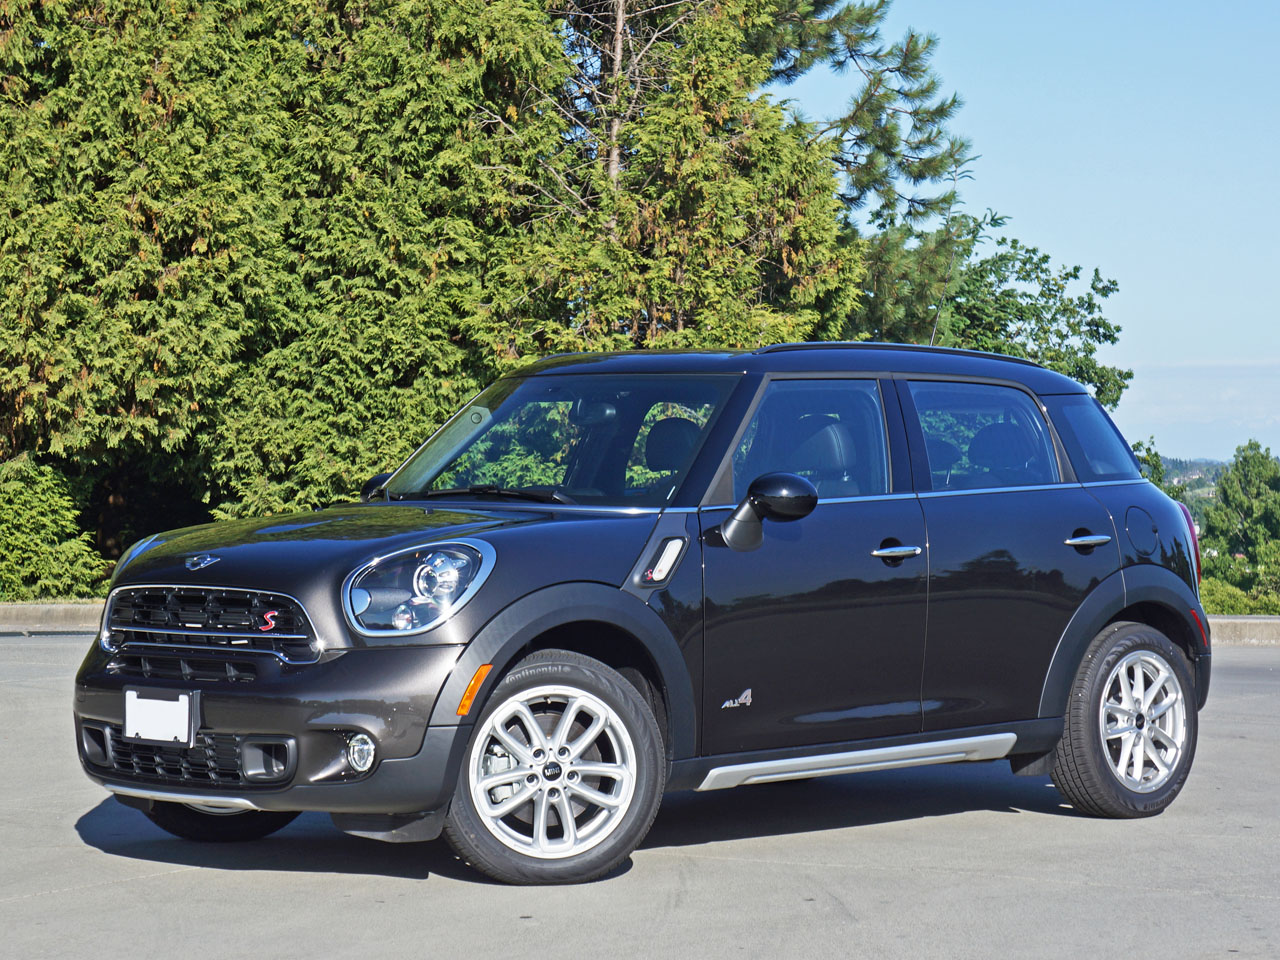 2015 mini cooper s countryman all4 road test review carcostcanada. Black Bedroom Furniture Sets. Home Design Ideas